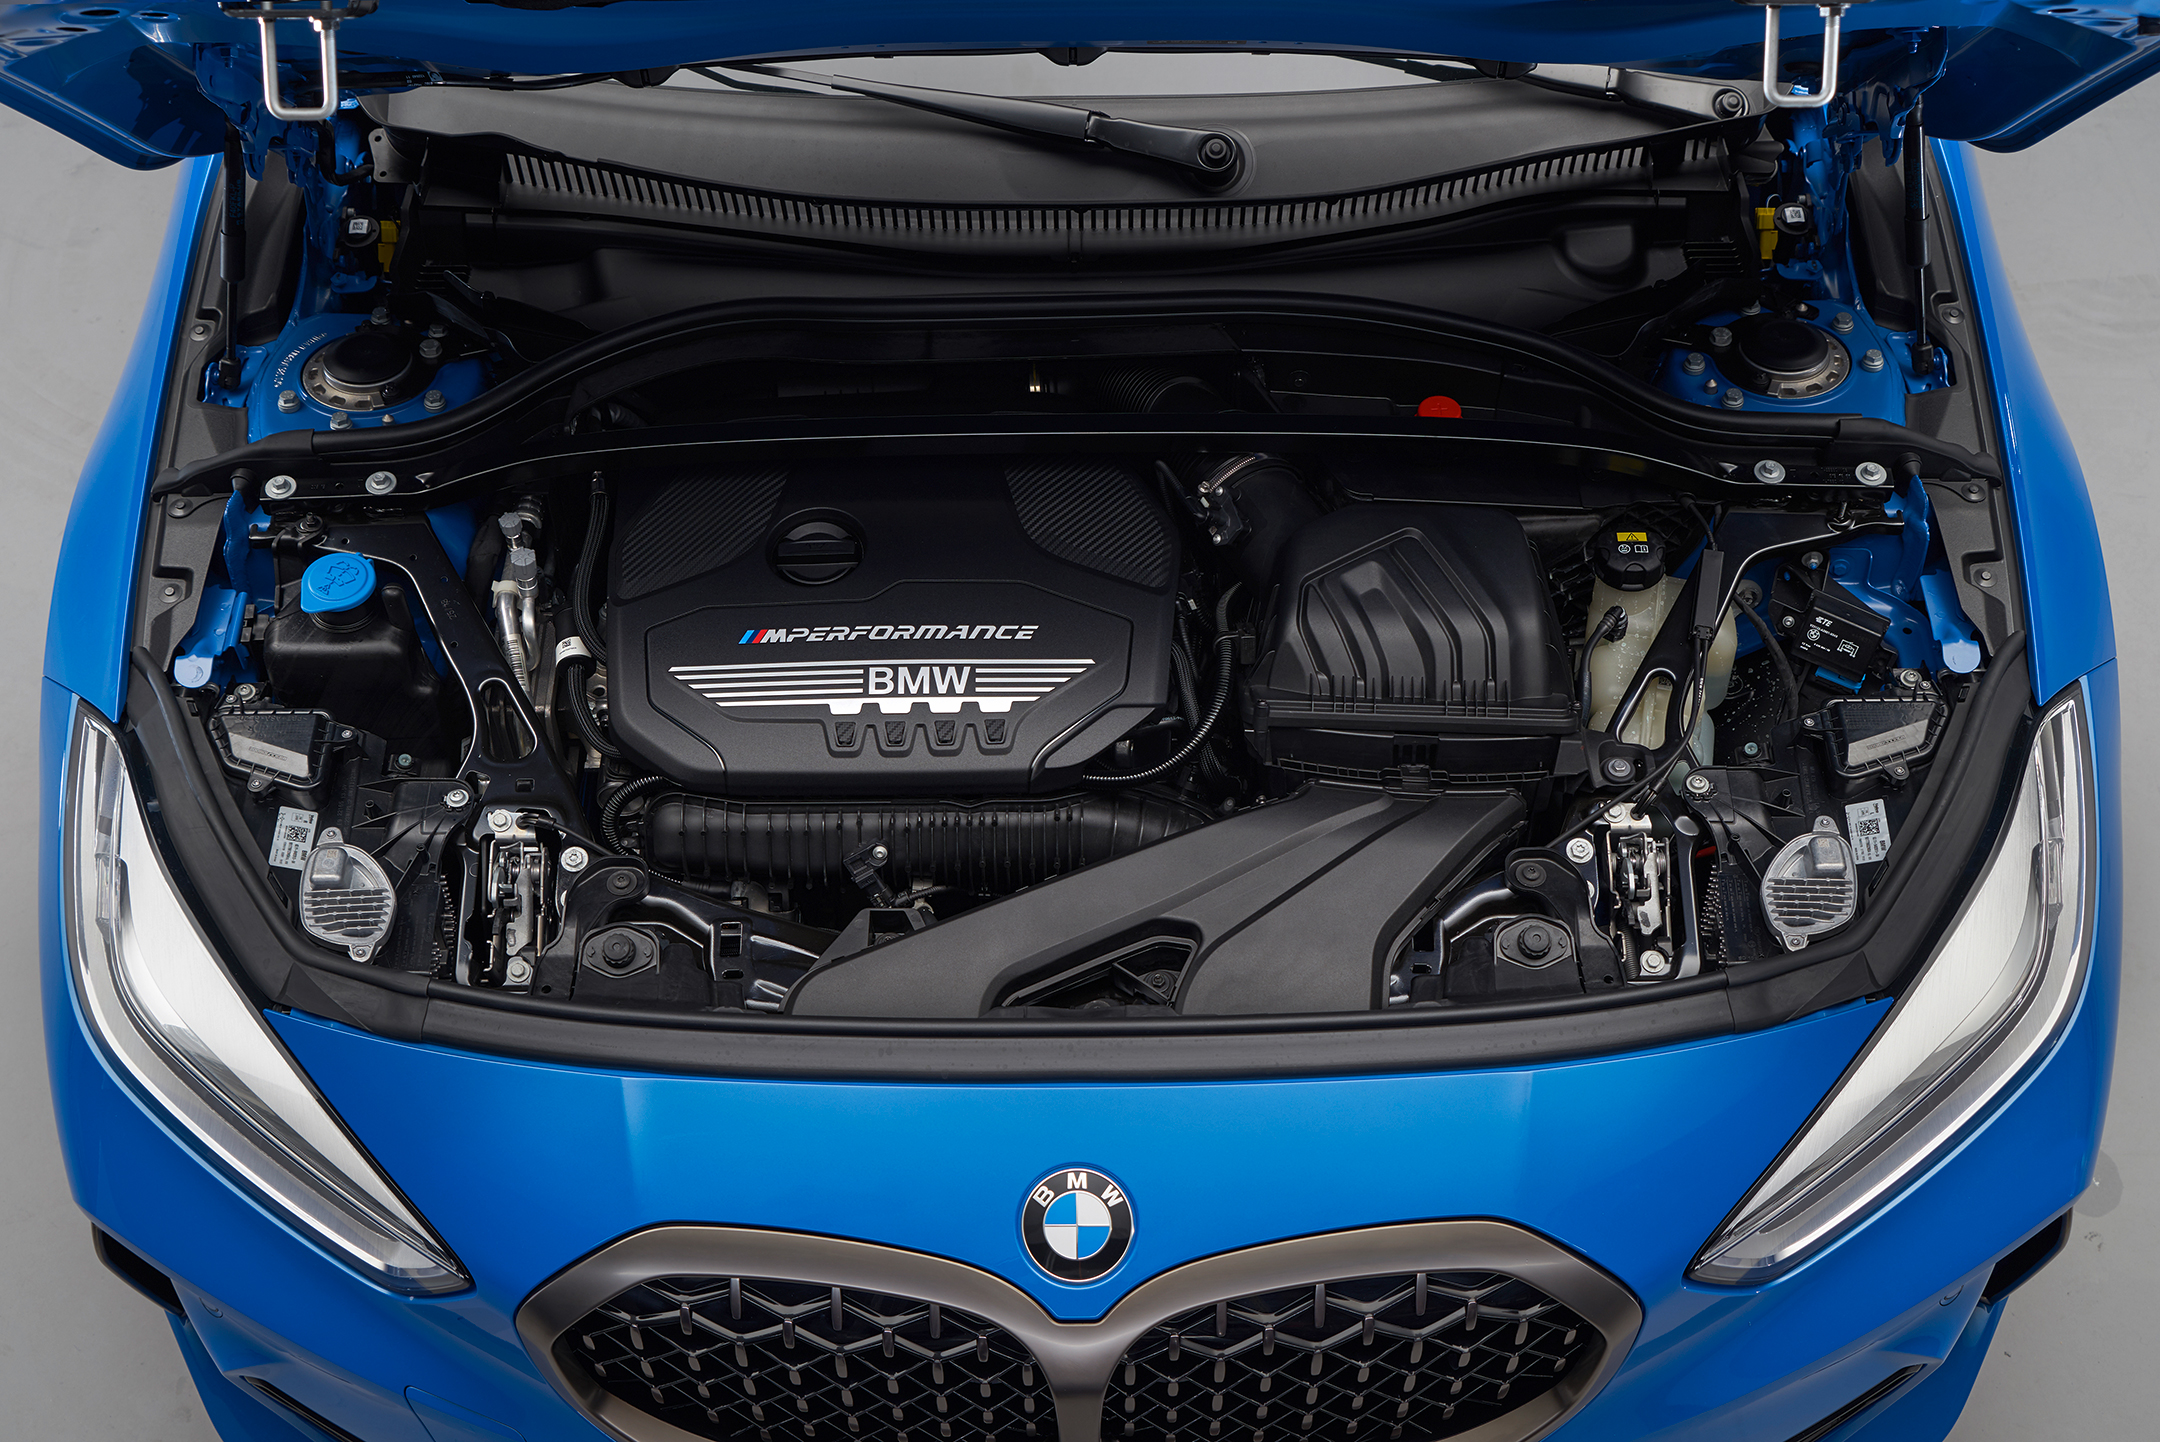 BMW 1 Series M135i xDrive - 2019 - under the hood - engine / moteur